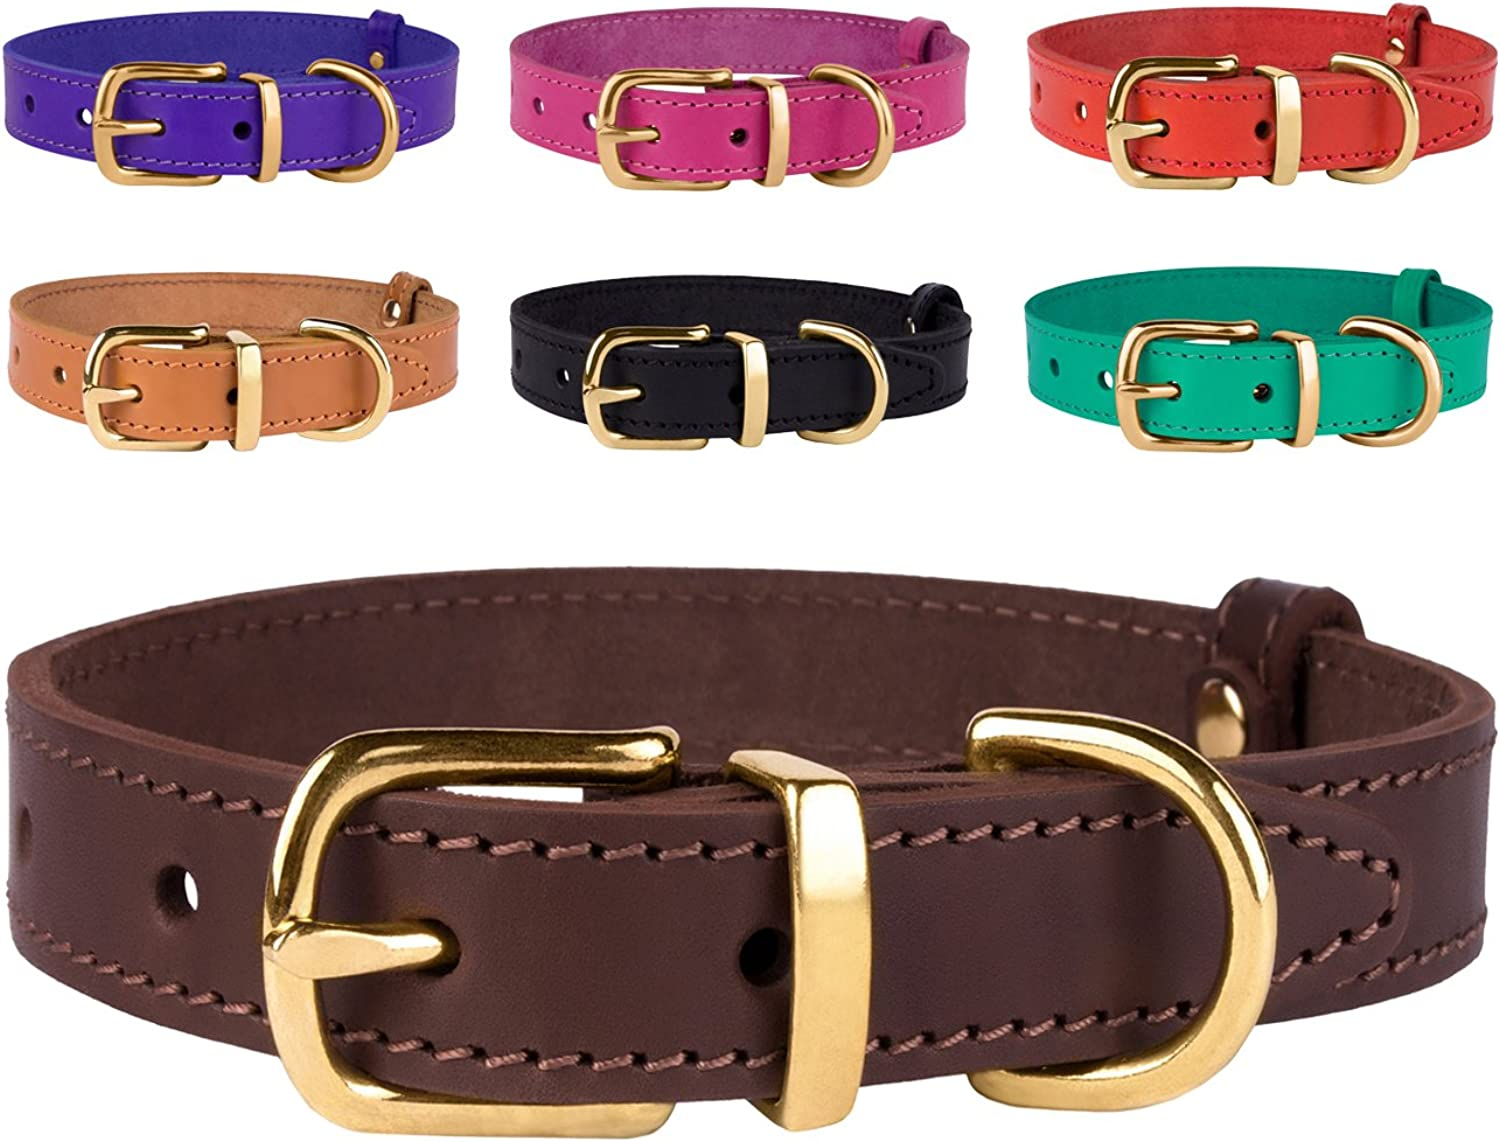 BronzeDog Genuine Leather Dog Collar Adjustable Durable Pet Collars for Dogs Small Medium Large Puppy Black Brown Red Pink Purple Green (Neck Size 9 1 2   12 1 2 , Dark Brown)